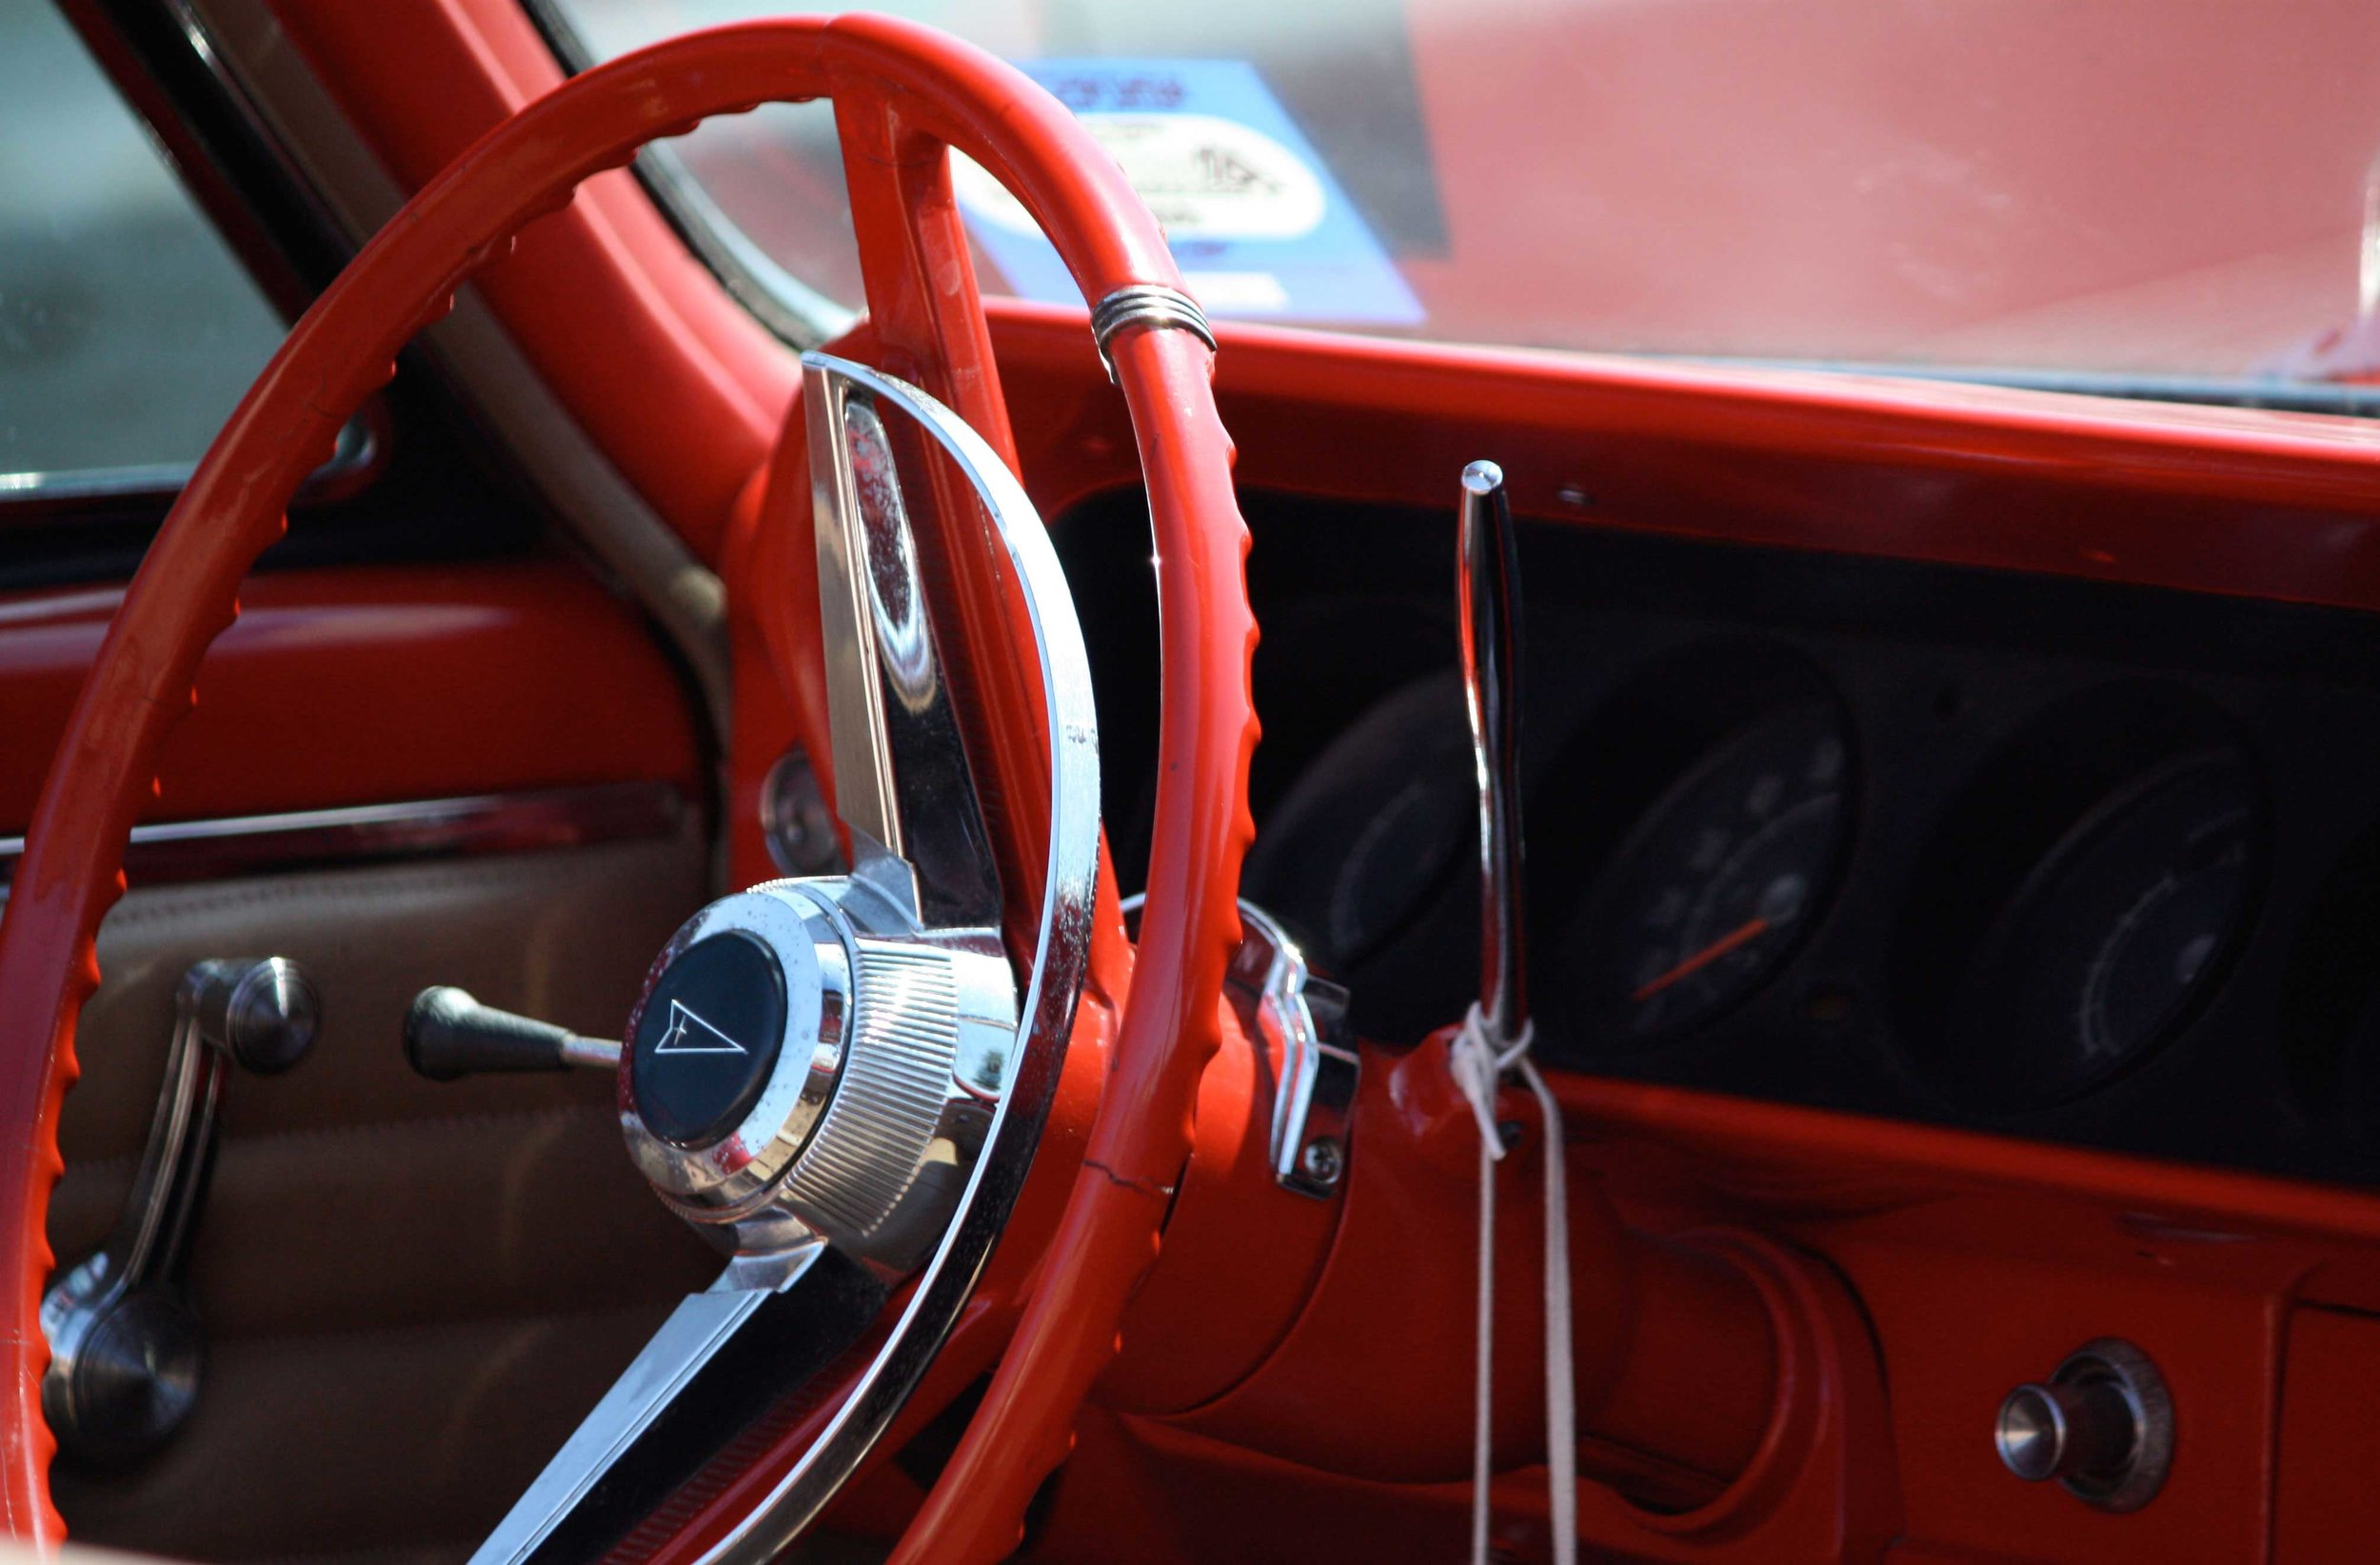 92_Red-Steering-Wheel_rgb_opt_web.jpg